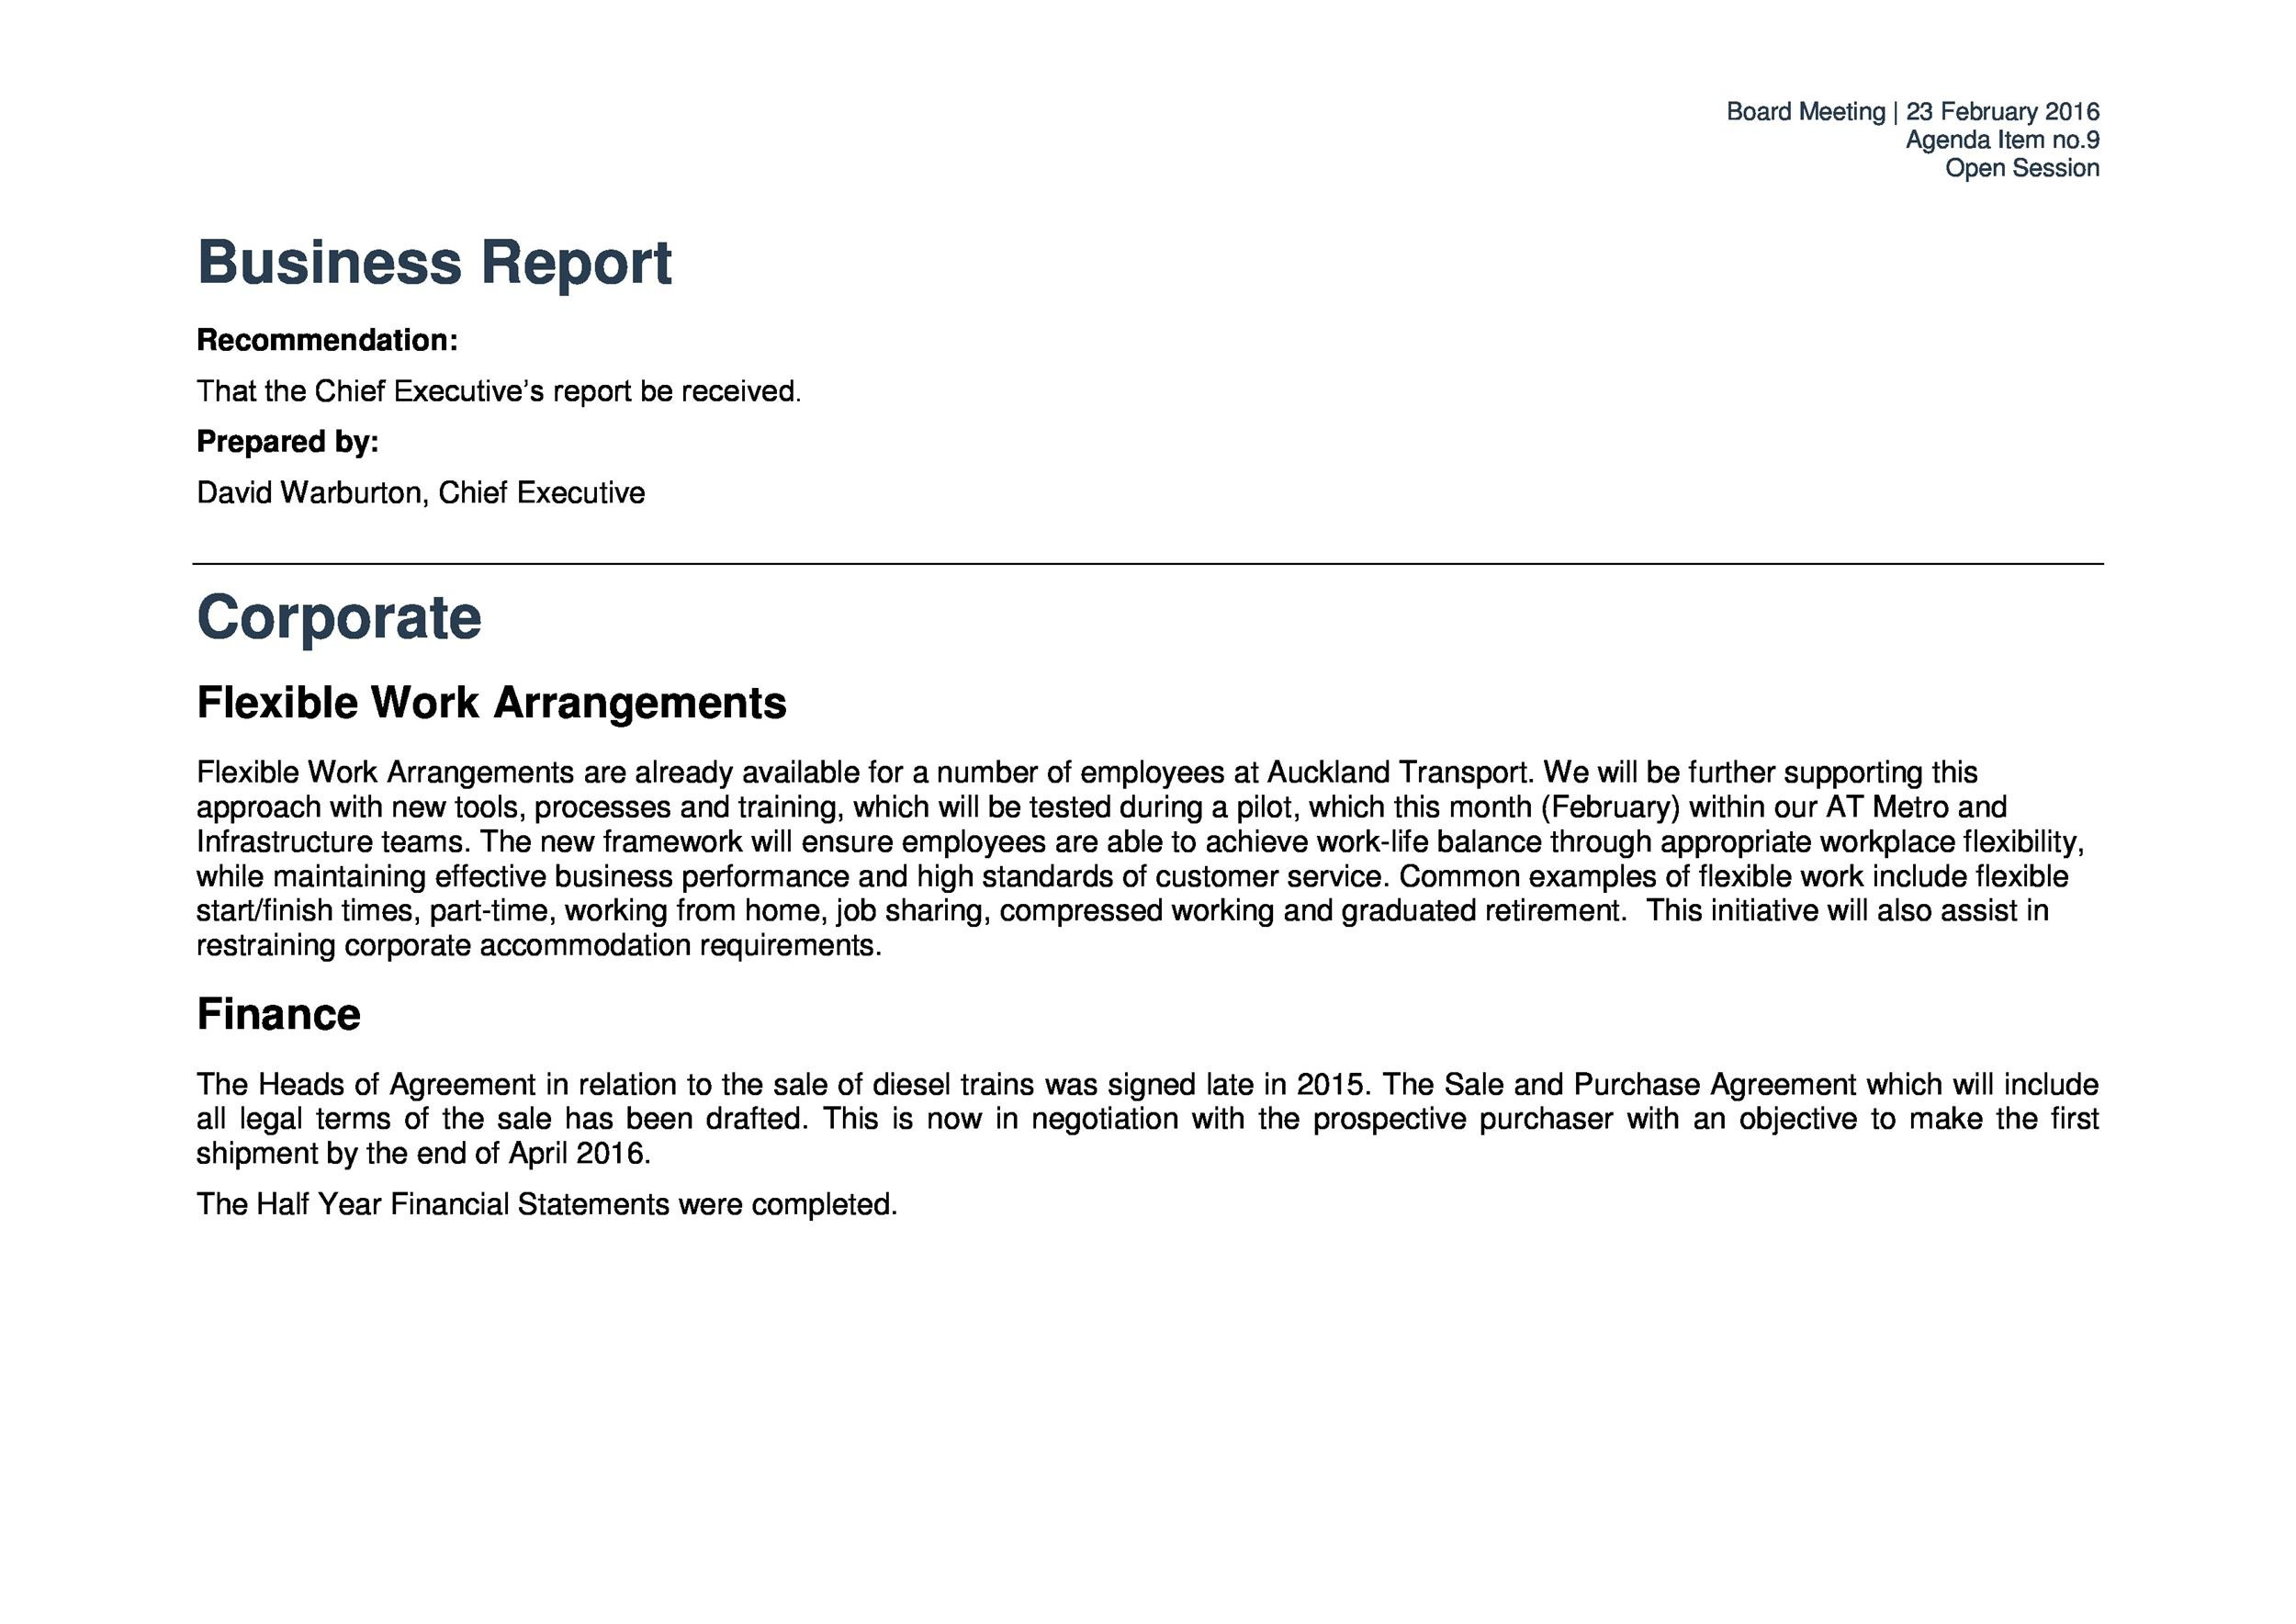 Business Report Templates  Format Examples  Template Lab